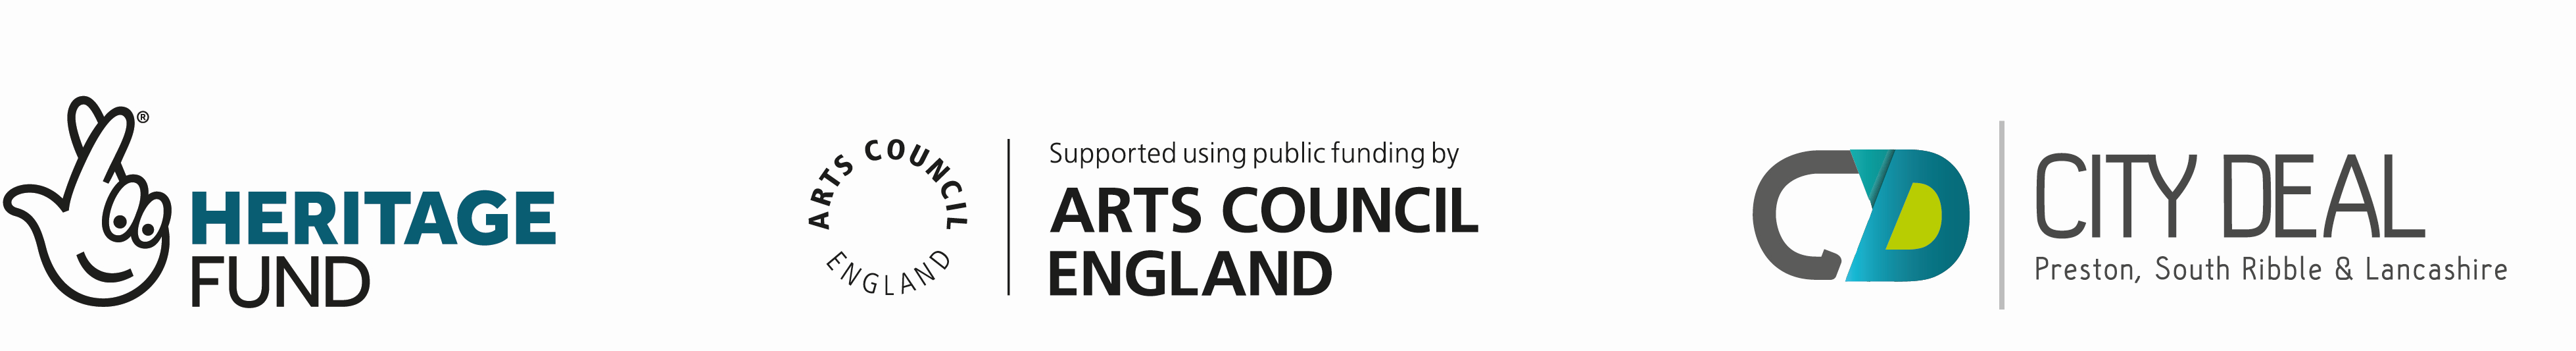 Heritage Fund, Arts Council and City Deal logos